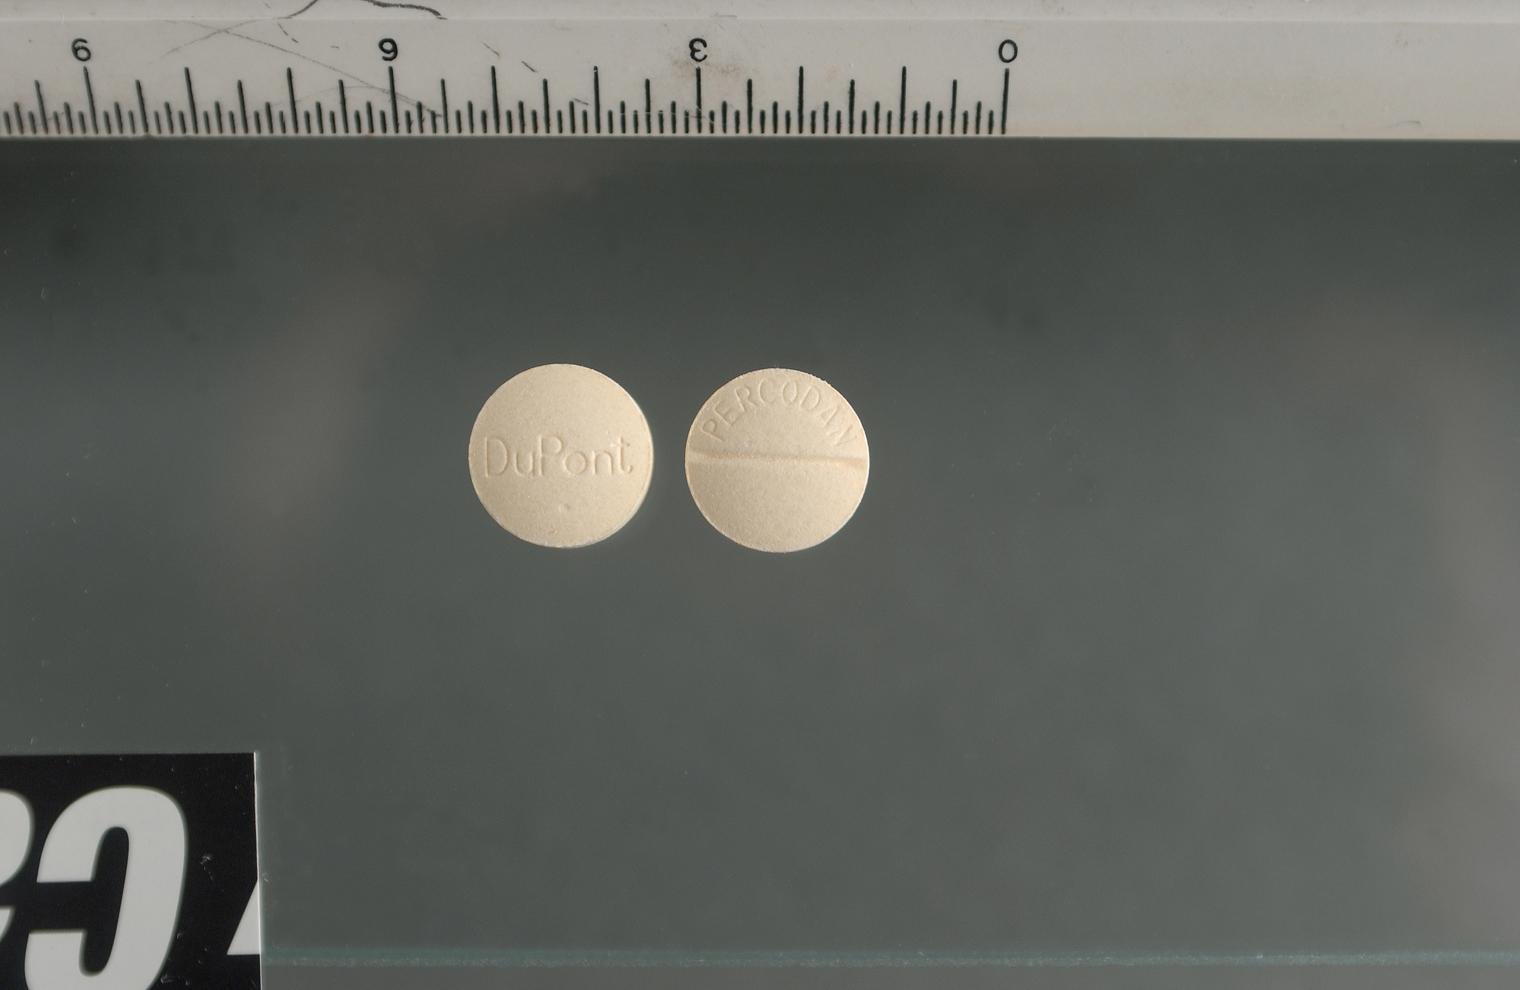 Percodan 4.5mg